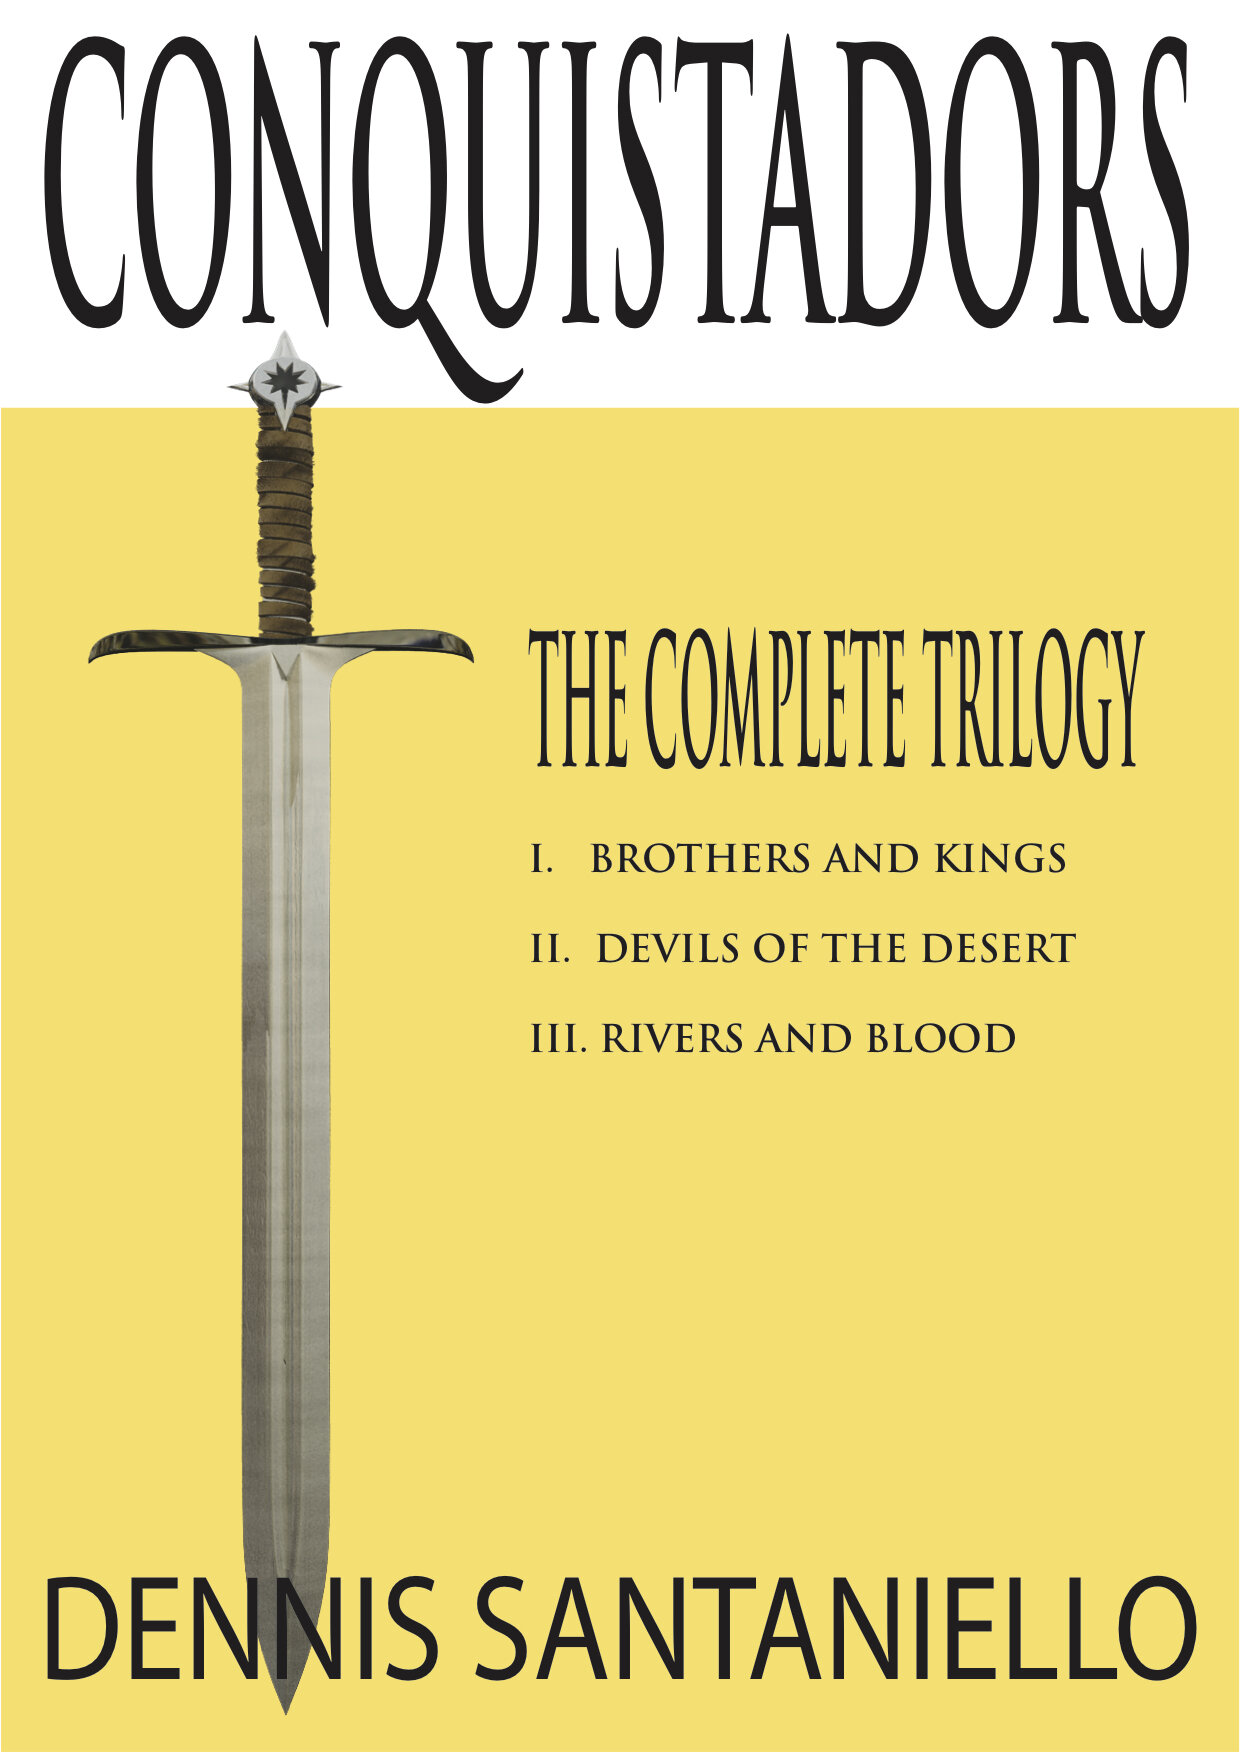 """THE COMPLETE TRILOGY - In 1492, Columbus sailed the ocean blue. But what your teachers never told you was what happened next. Because the truth is a scary thing.Empires will crumble. Blood will fall.A thrilling and realistic epic"""" CONQUISTADORS"""" is a Historical Fiction book trilogy that explores the violent and horrific Spanish Conquest of the New World from the years of 1527-1542.Through the jungles of Peru, to the vast Arizona deserts, and finally to the great Mississippi River, and told through the eyes of a Spanish soldier named Sardina, this epic tale accurately portrays the horrific events and trauma of the Spanish Conquest of the New World, while at the same time it rightfully captures the undying resolve and bravery of the Native American people.Grab this instant classic now. Includes: BROTHERS AND KINGS, DEVILS OF THE DESERT, and RIVERS AND BLOOD."""